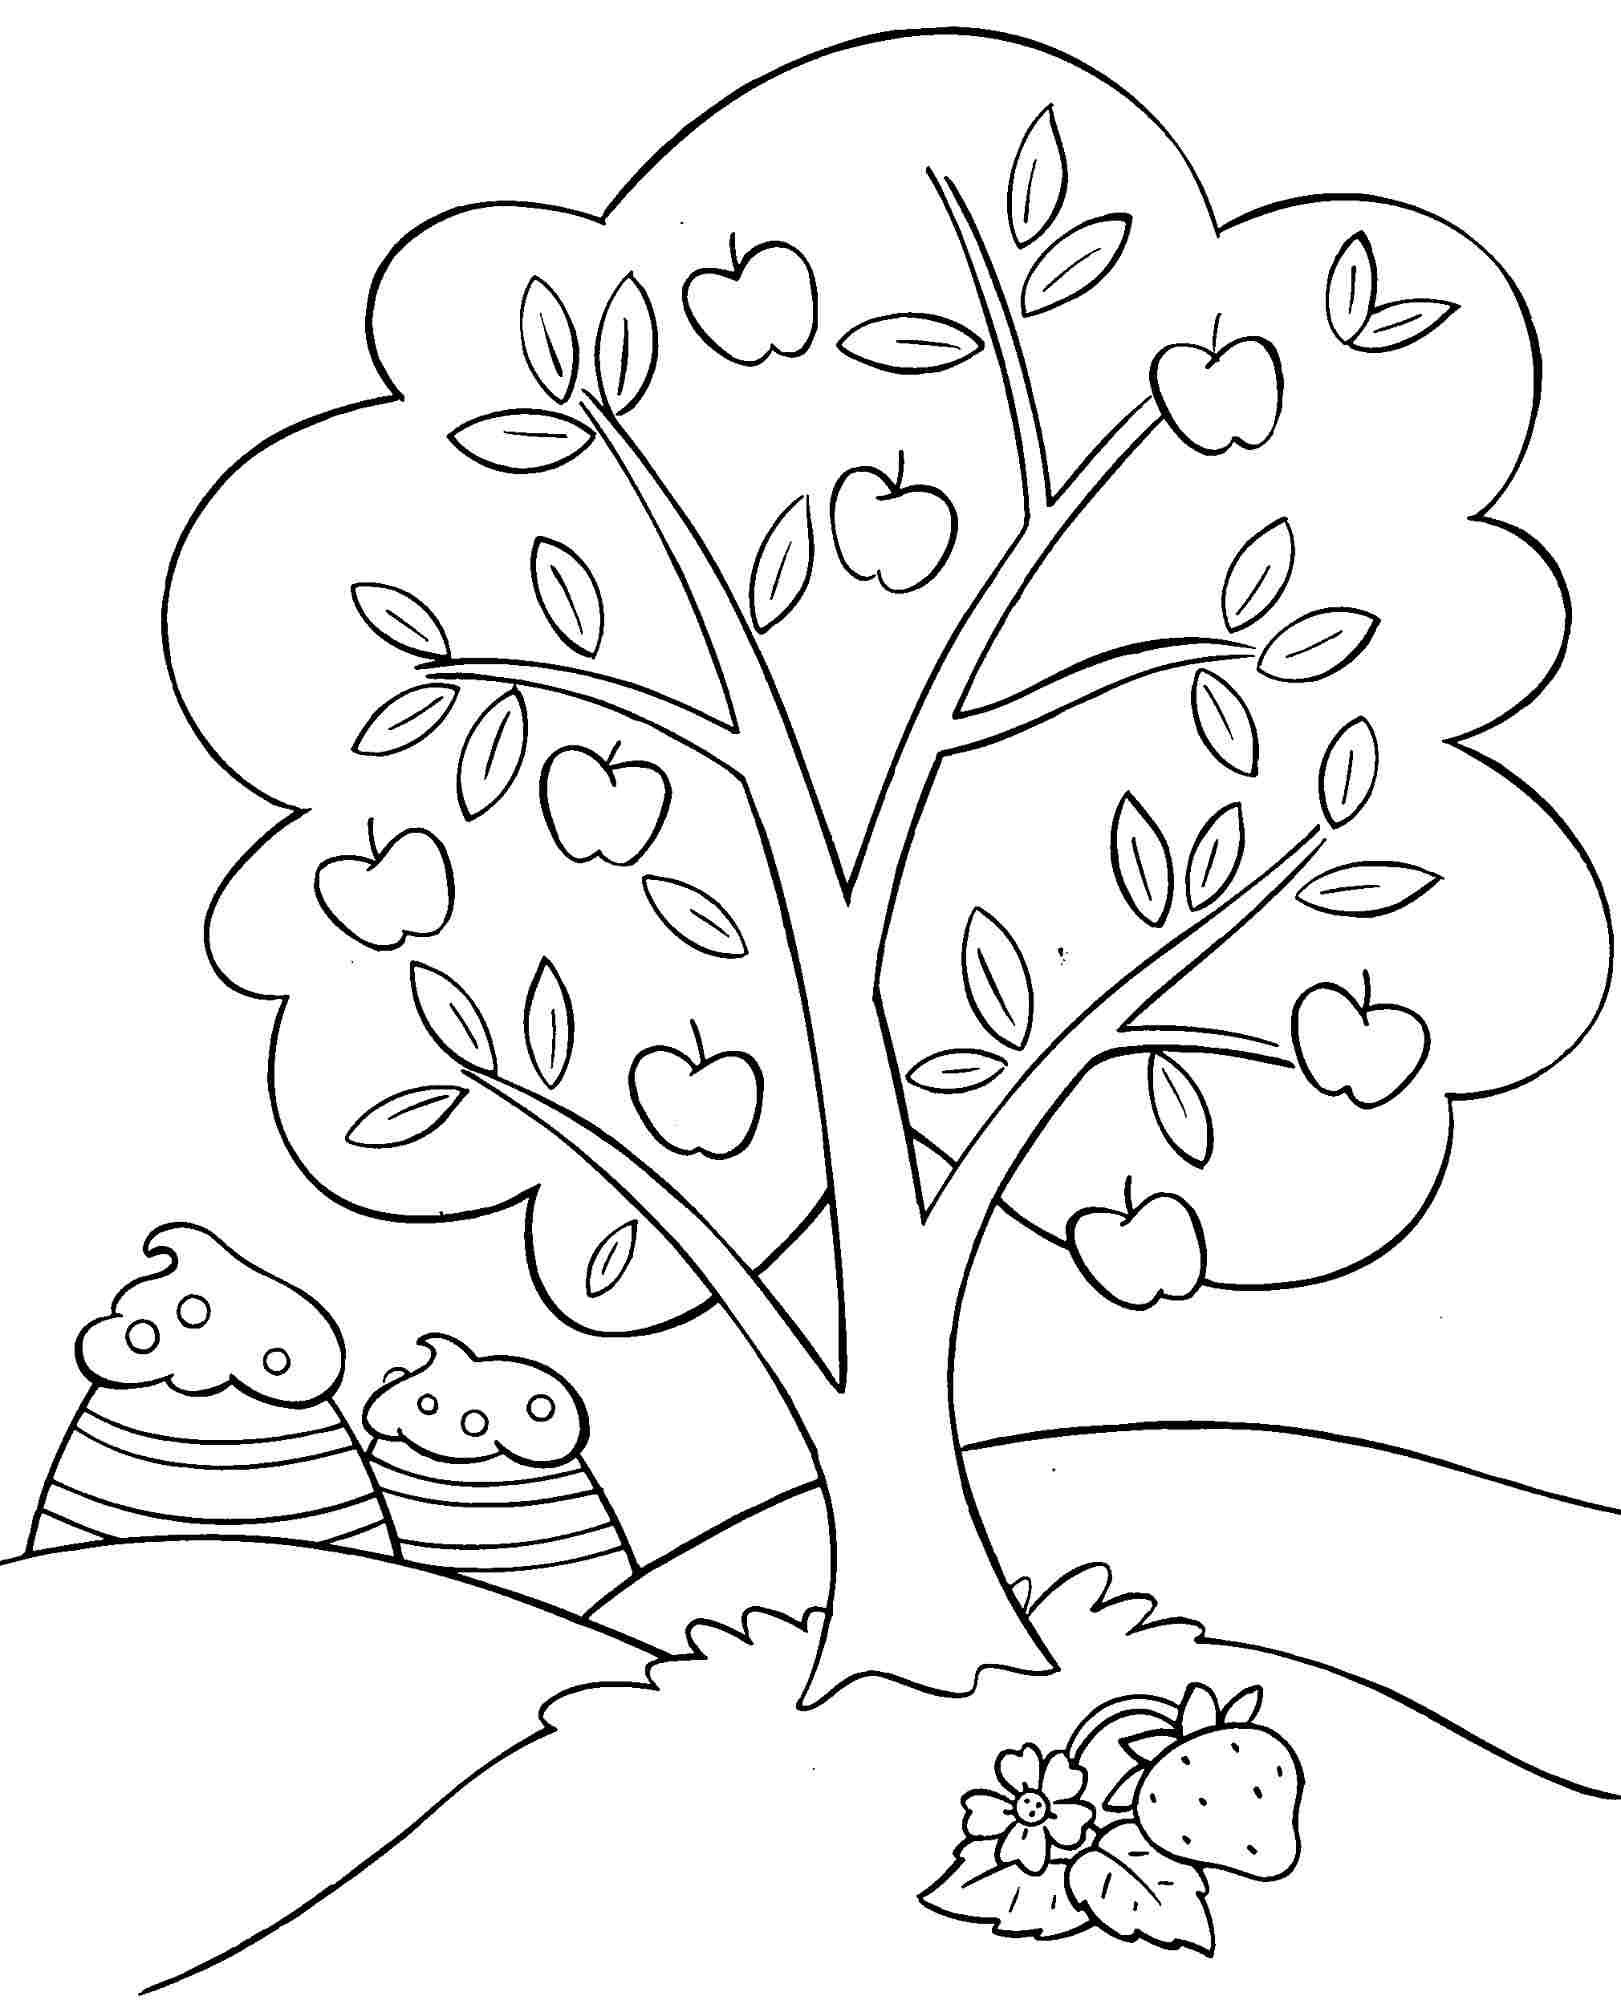 Coloring Pages Free Cartoon Strawberry Shortcake And Friends For ...